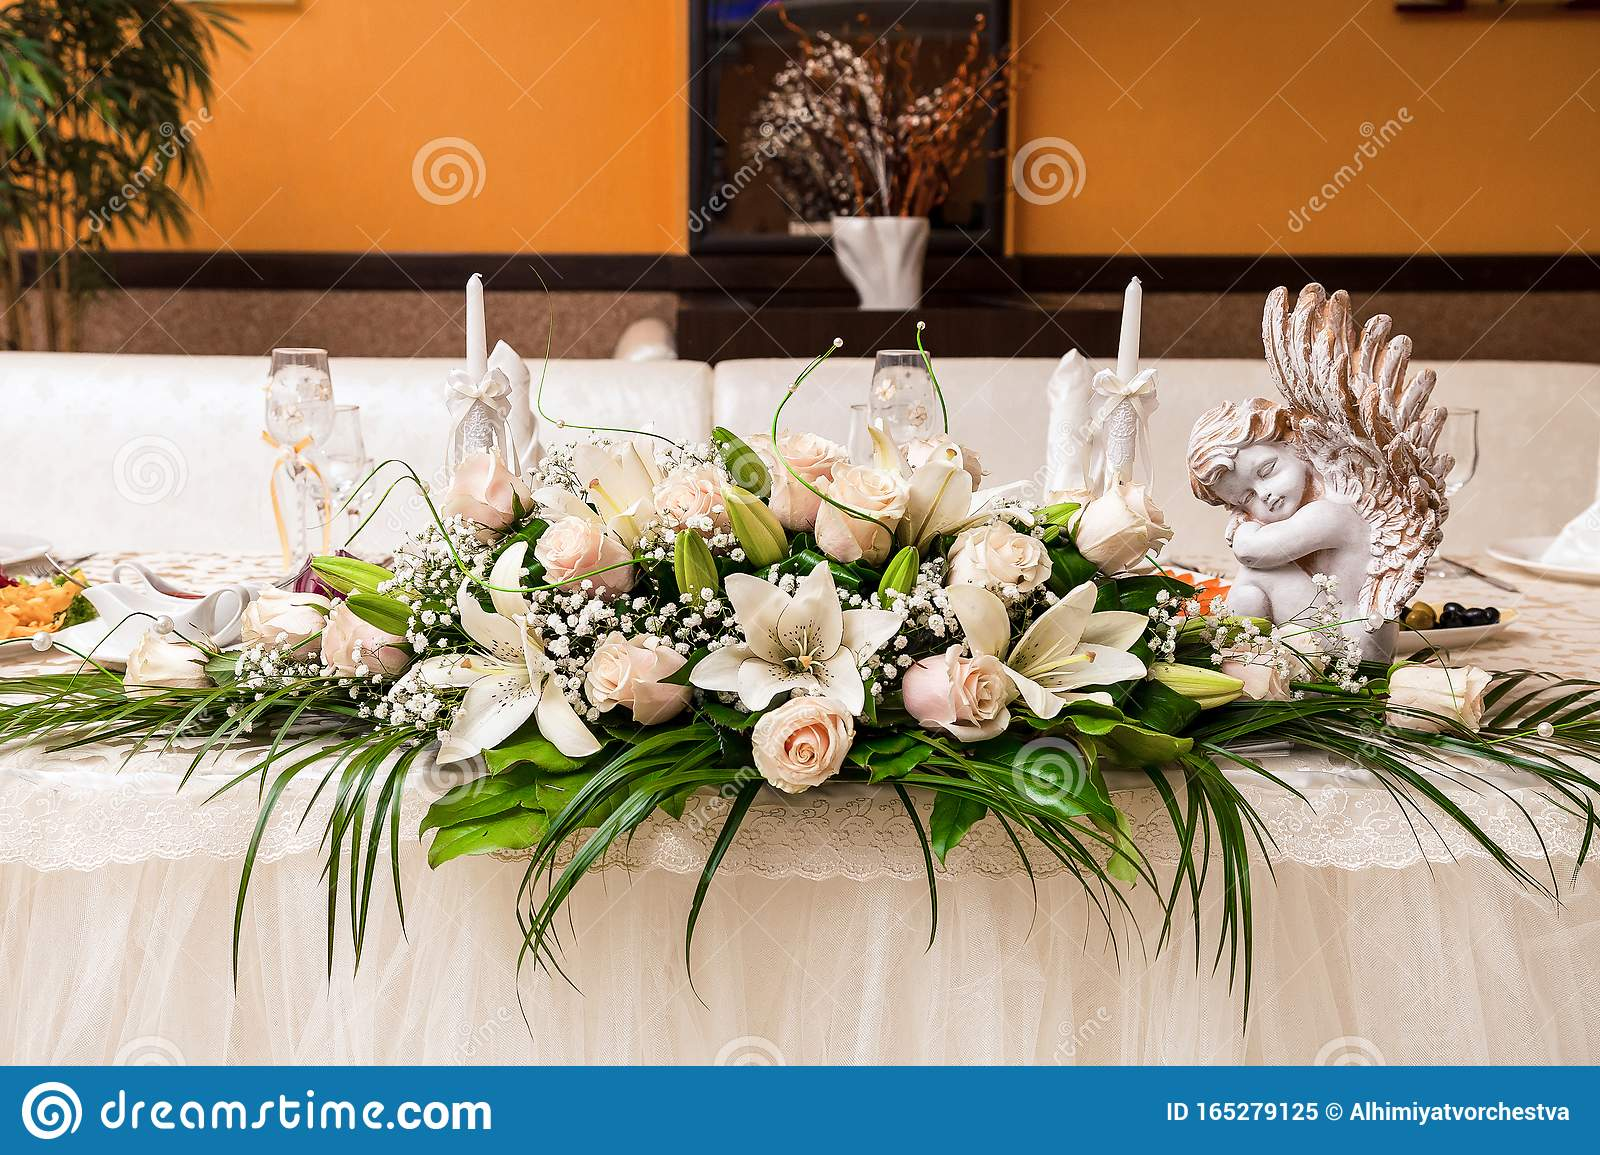 Wedding Table Decoration With Flowers Cream Colored Lilies And Roses Stock Image Image Of Design Candlesticks 165279125